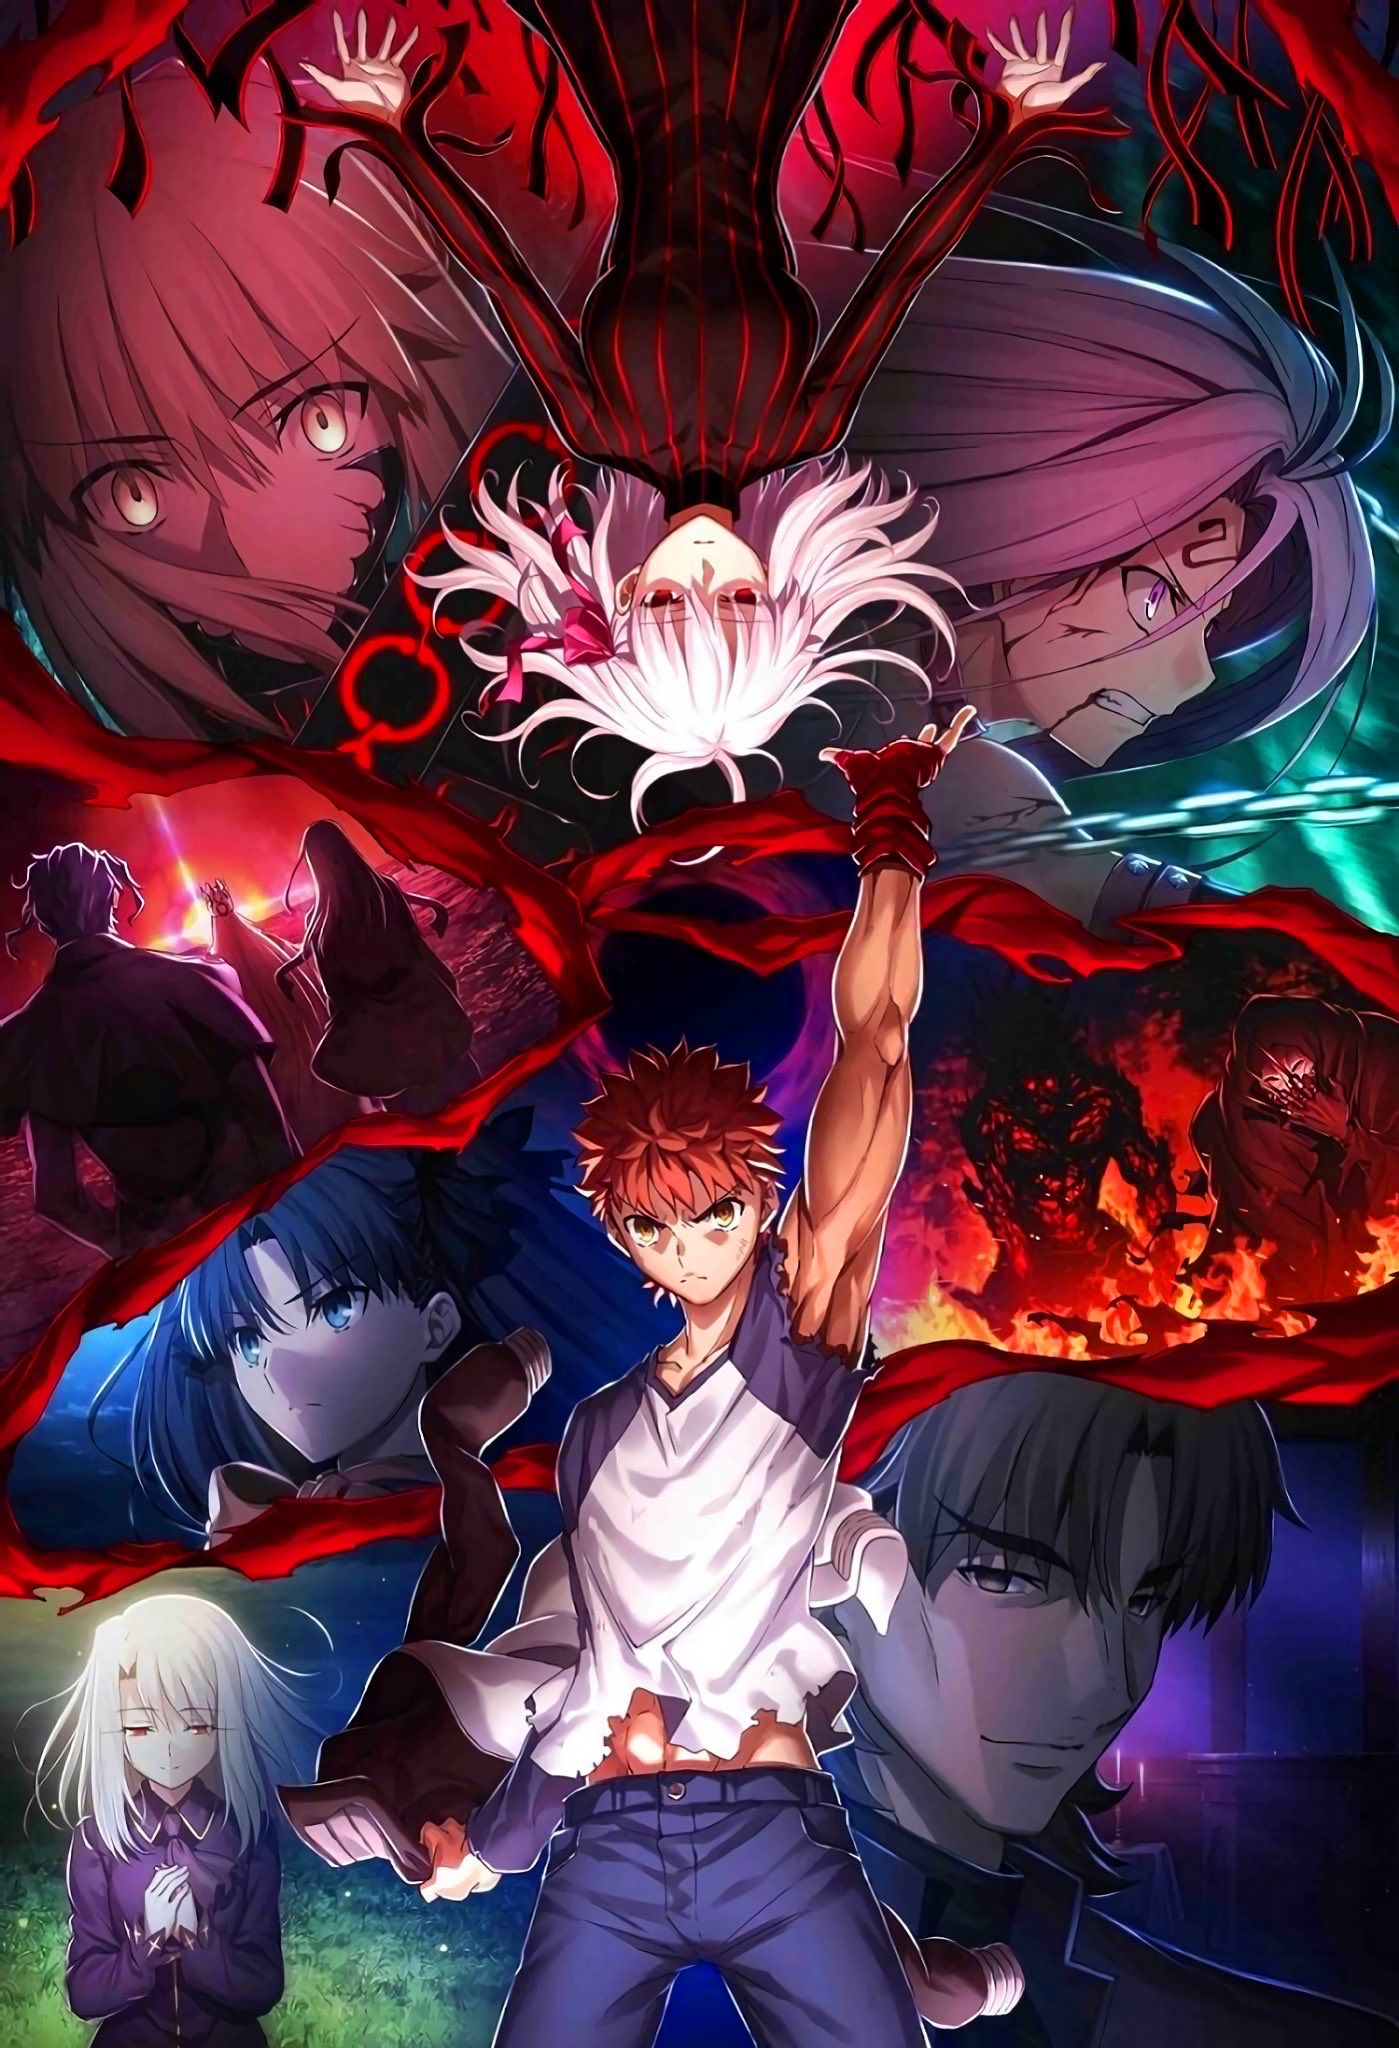 Pin by martin on my favorite anime series in 2020 fate